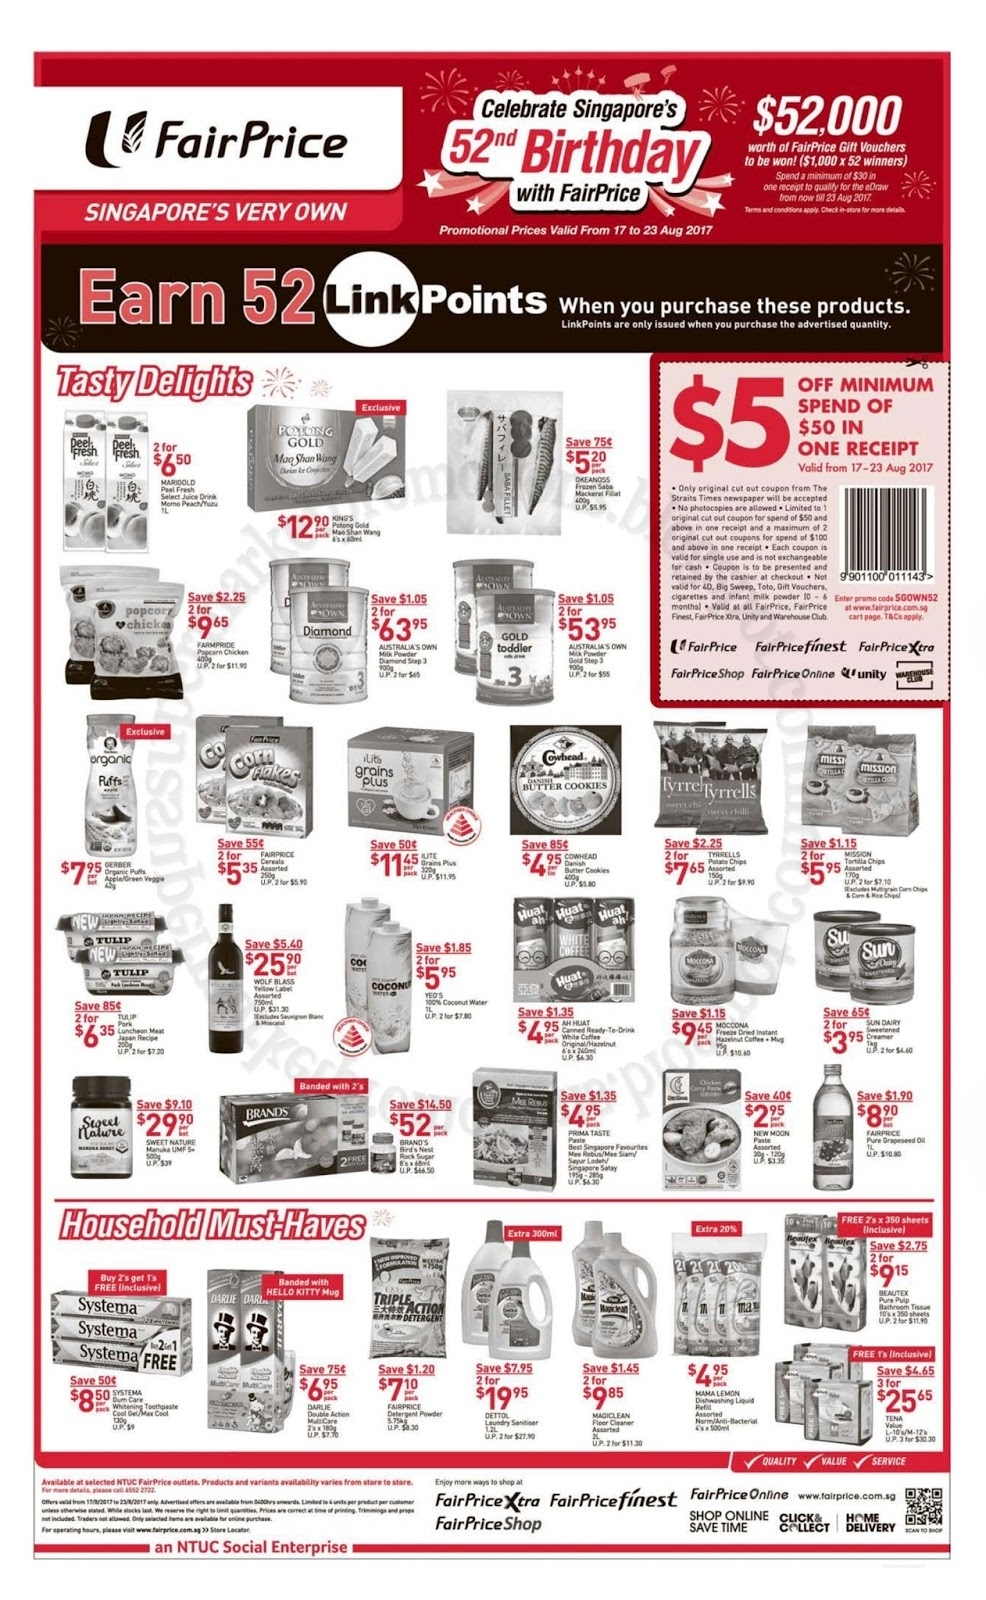 Ntuc Fairprice National Day Promotion 17 - 23 August 2017 intended for Images National Day August 23